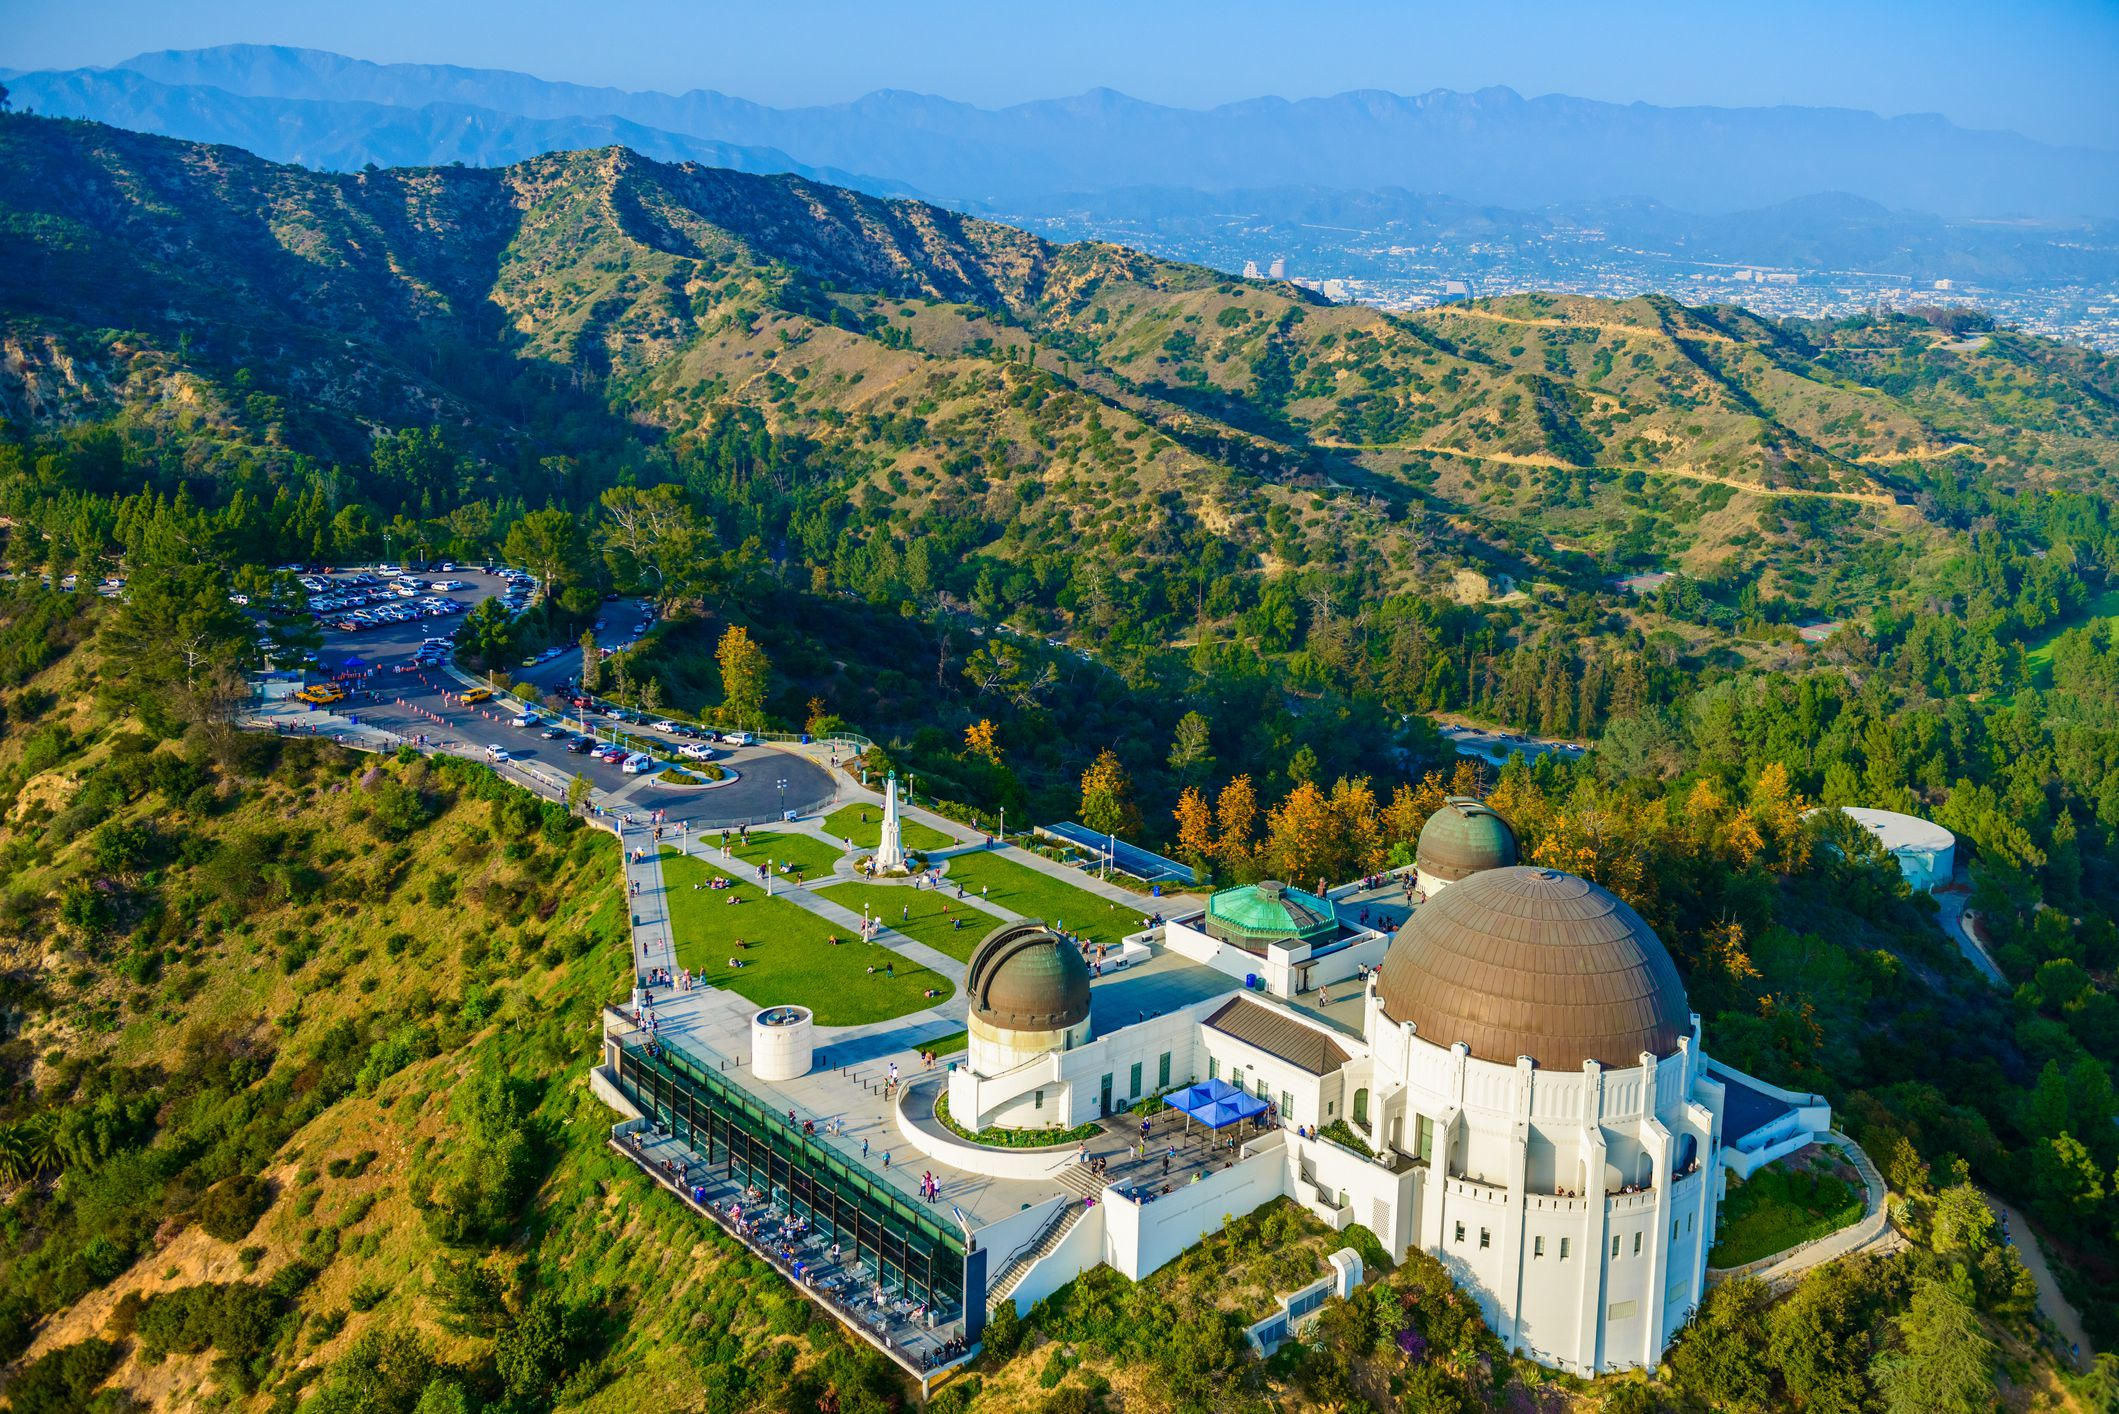 Griffith Observatory, Mount Hollywood, Los Angeles, CA